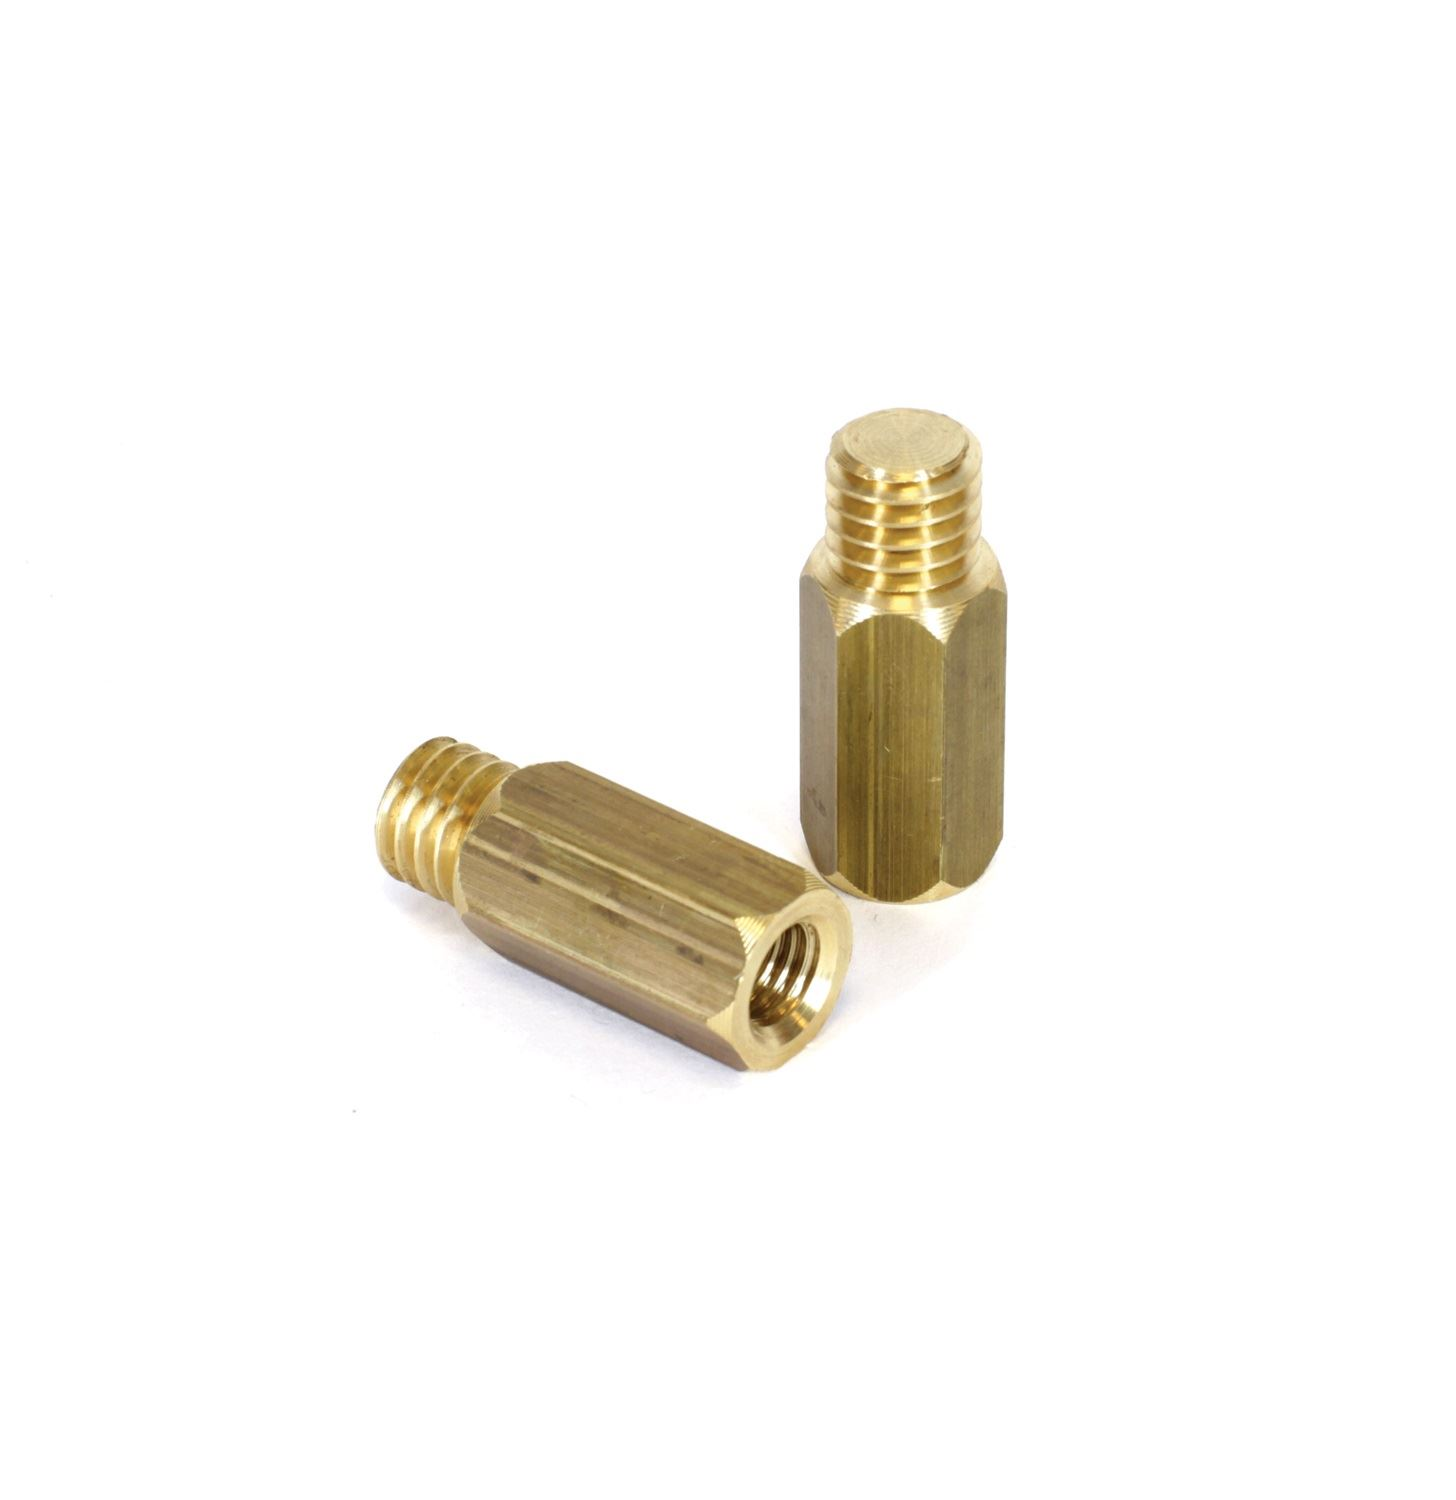 """Chimney rod adaptor from 1/2"""" Whitworth Male to M10 Female."""